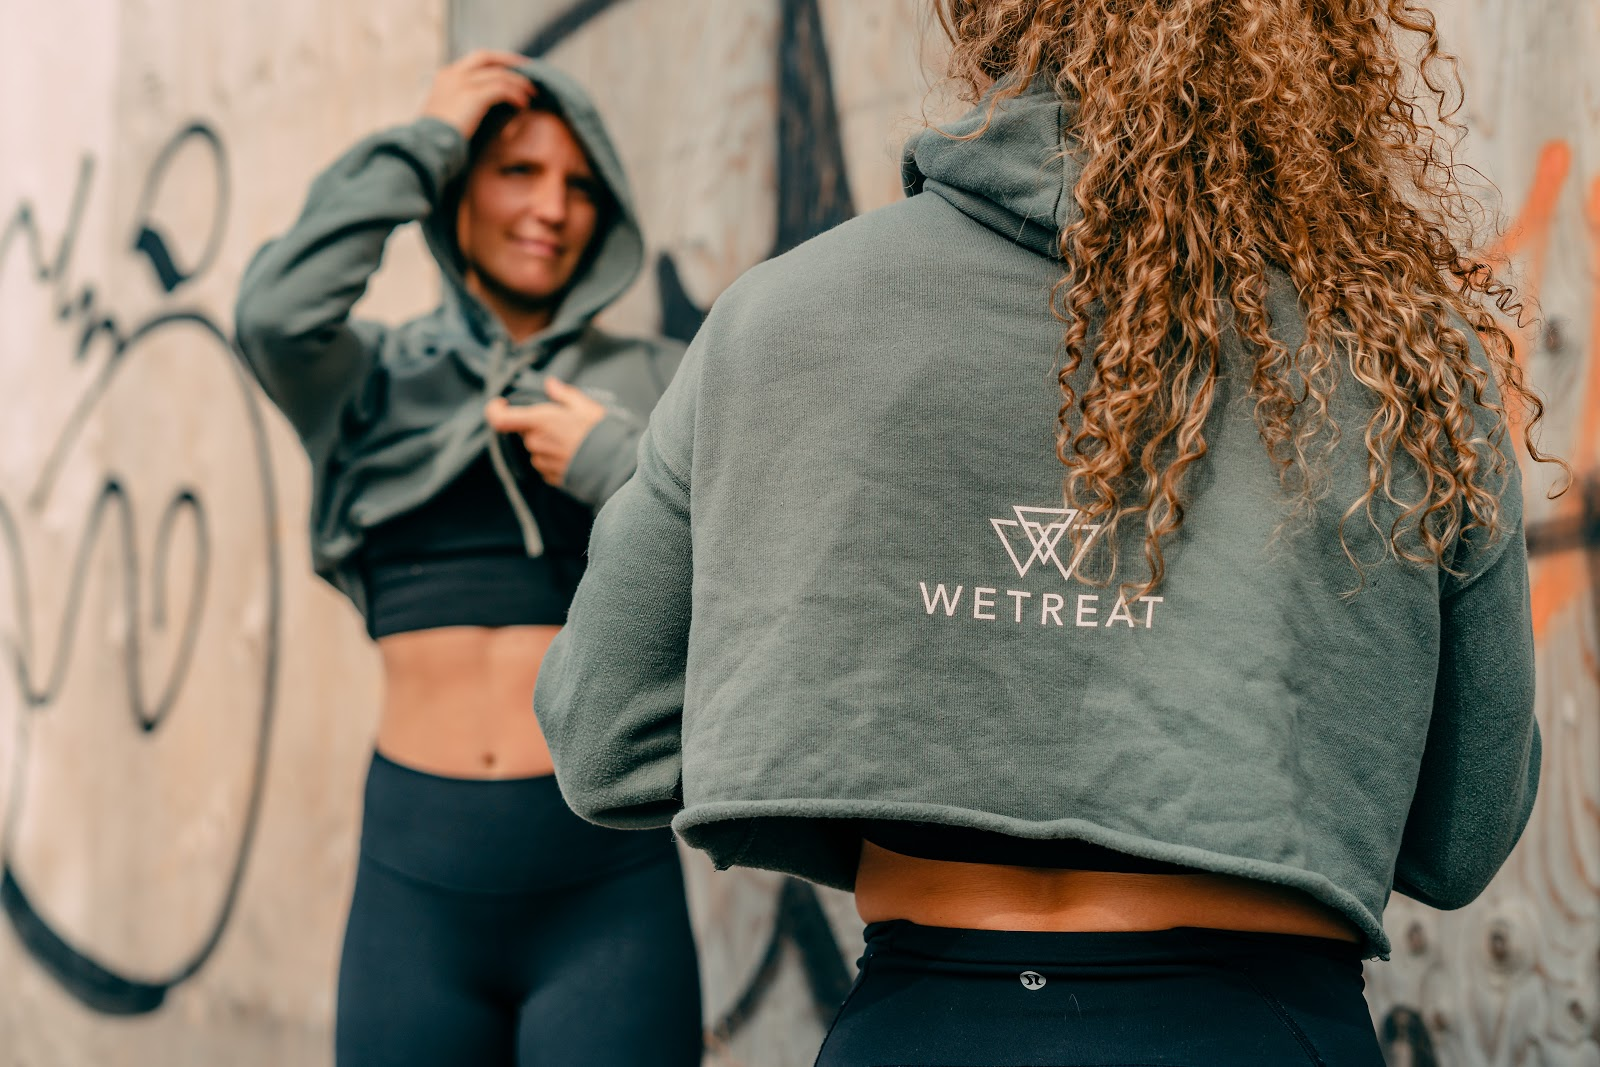 Two athletic women in hoodies wearing WETREAT custom screen print shirts by blankstyle.com